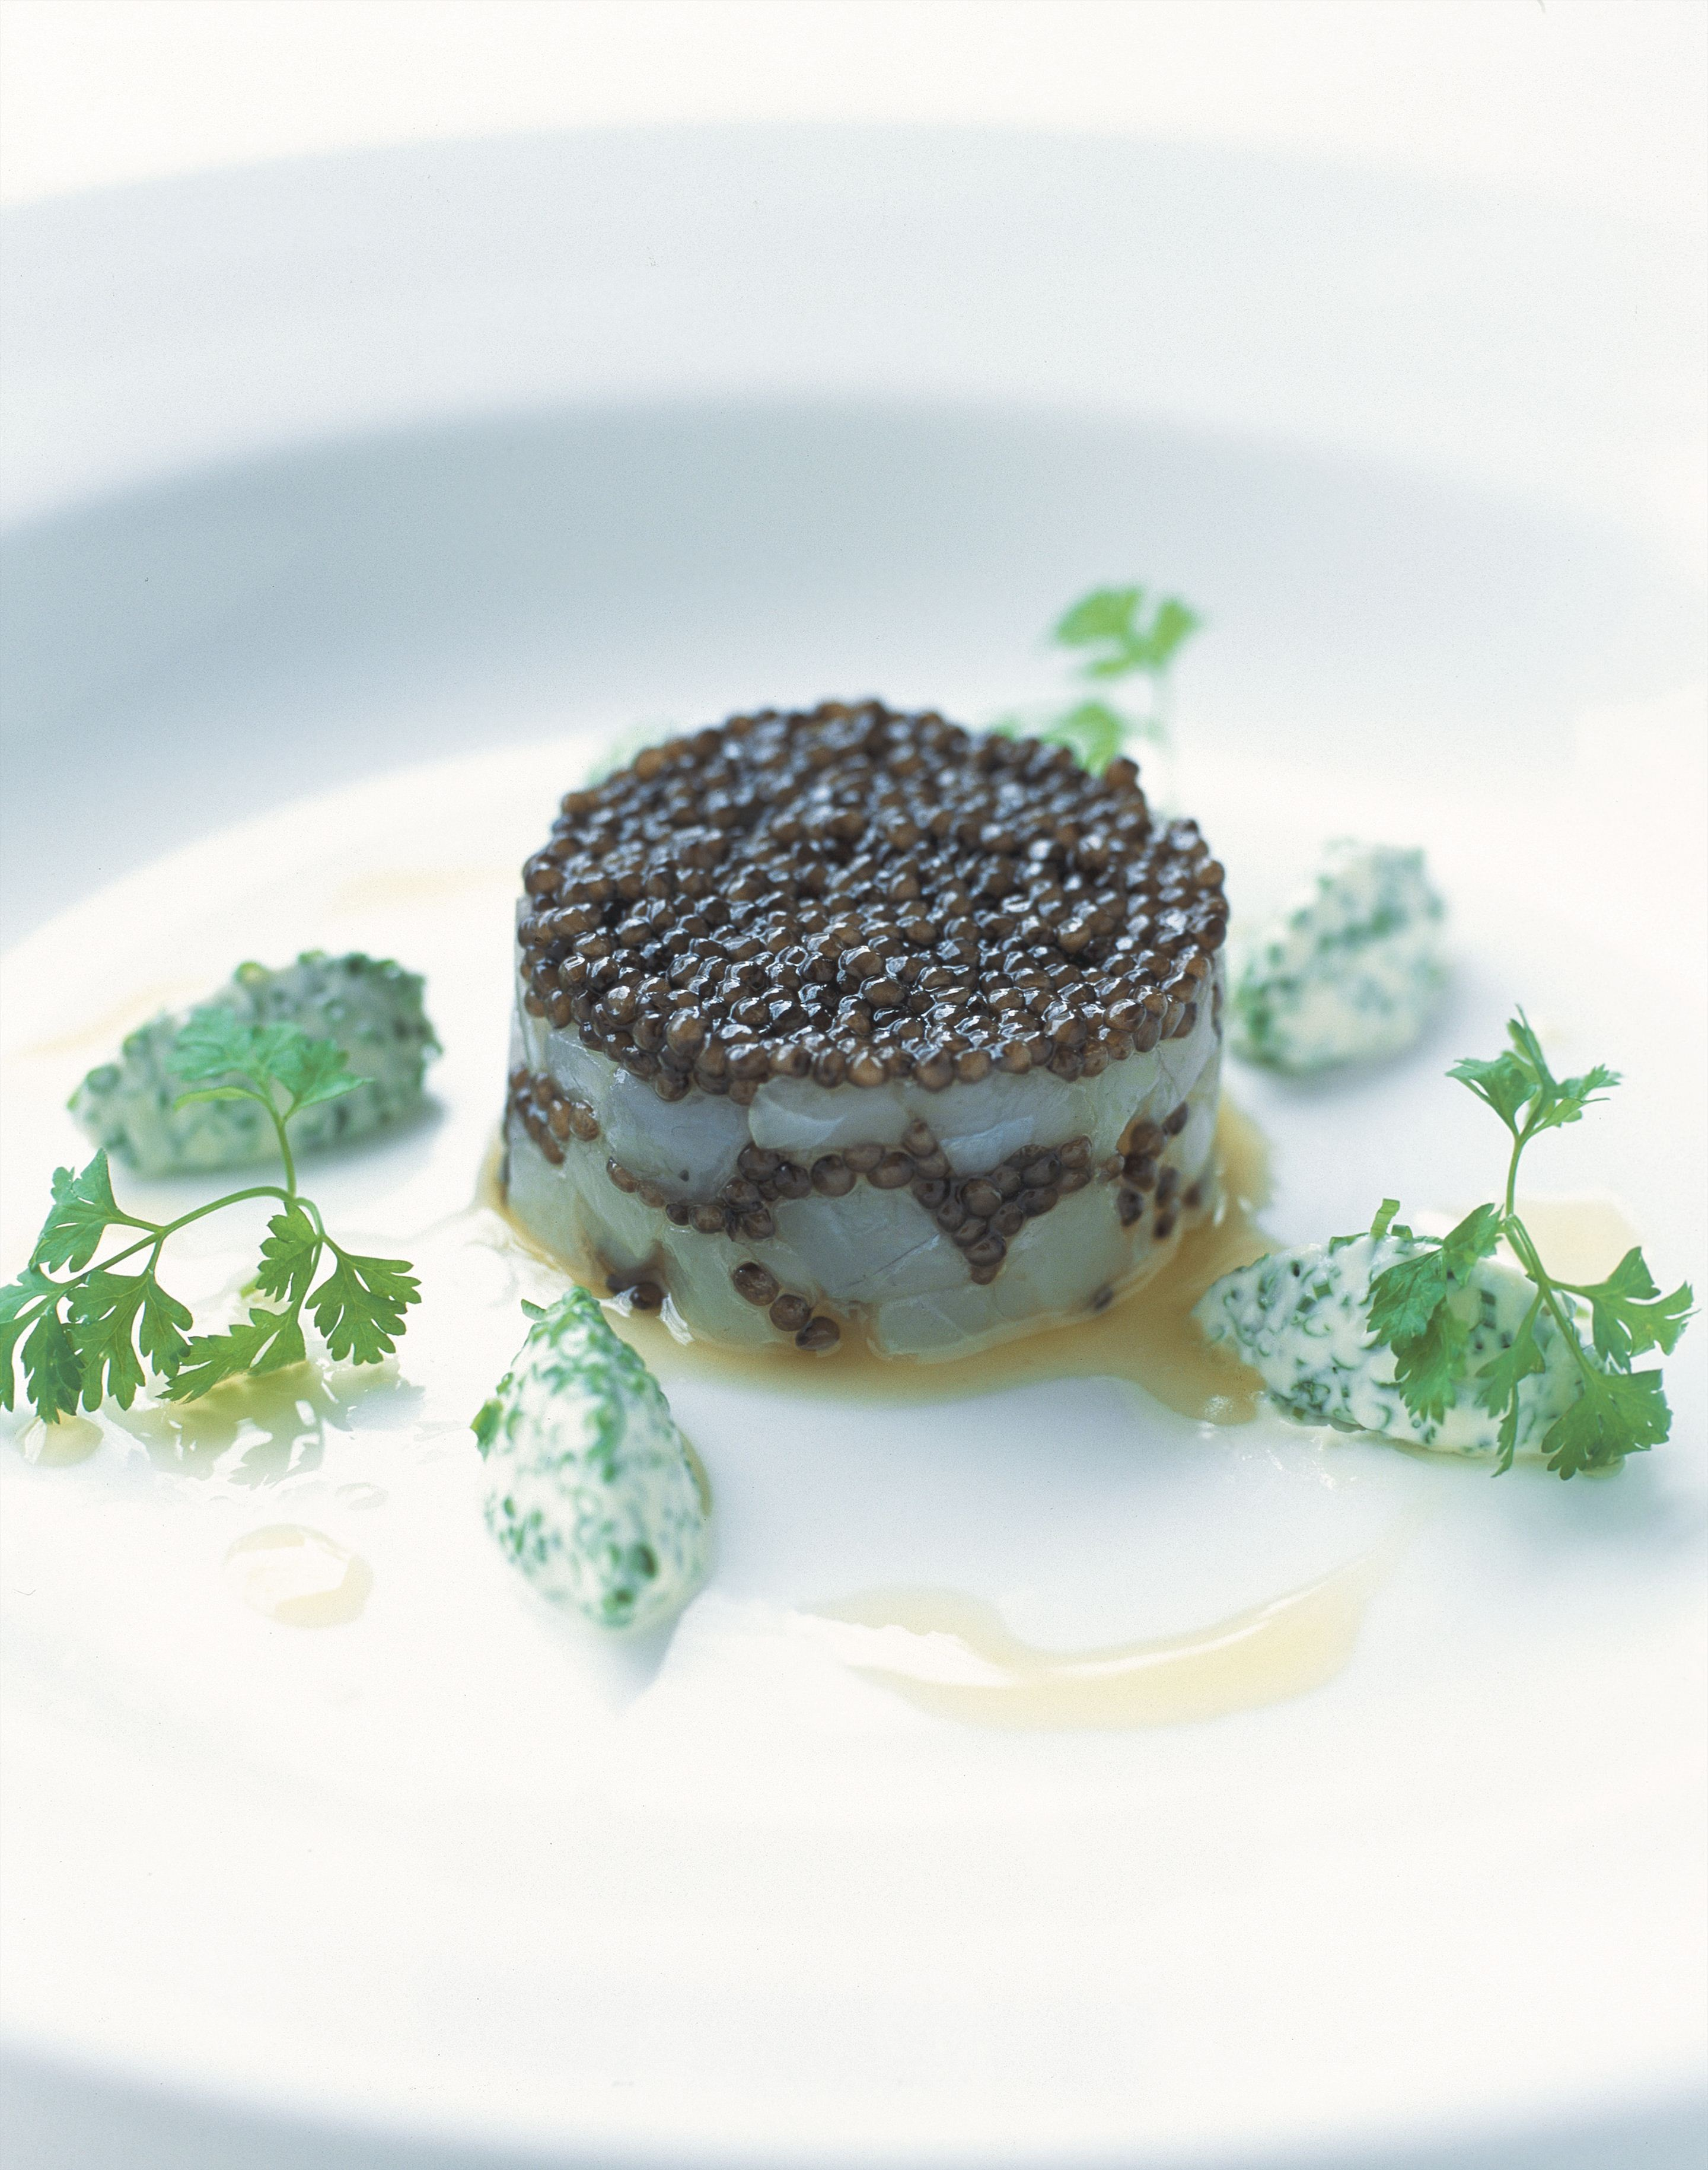 Tartare of mulloway with lranian osietra caviar and chive crème fraîche